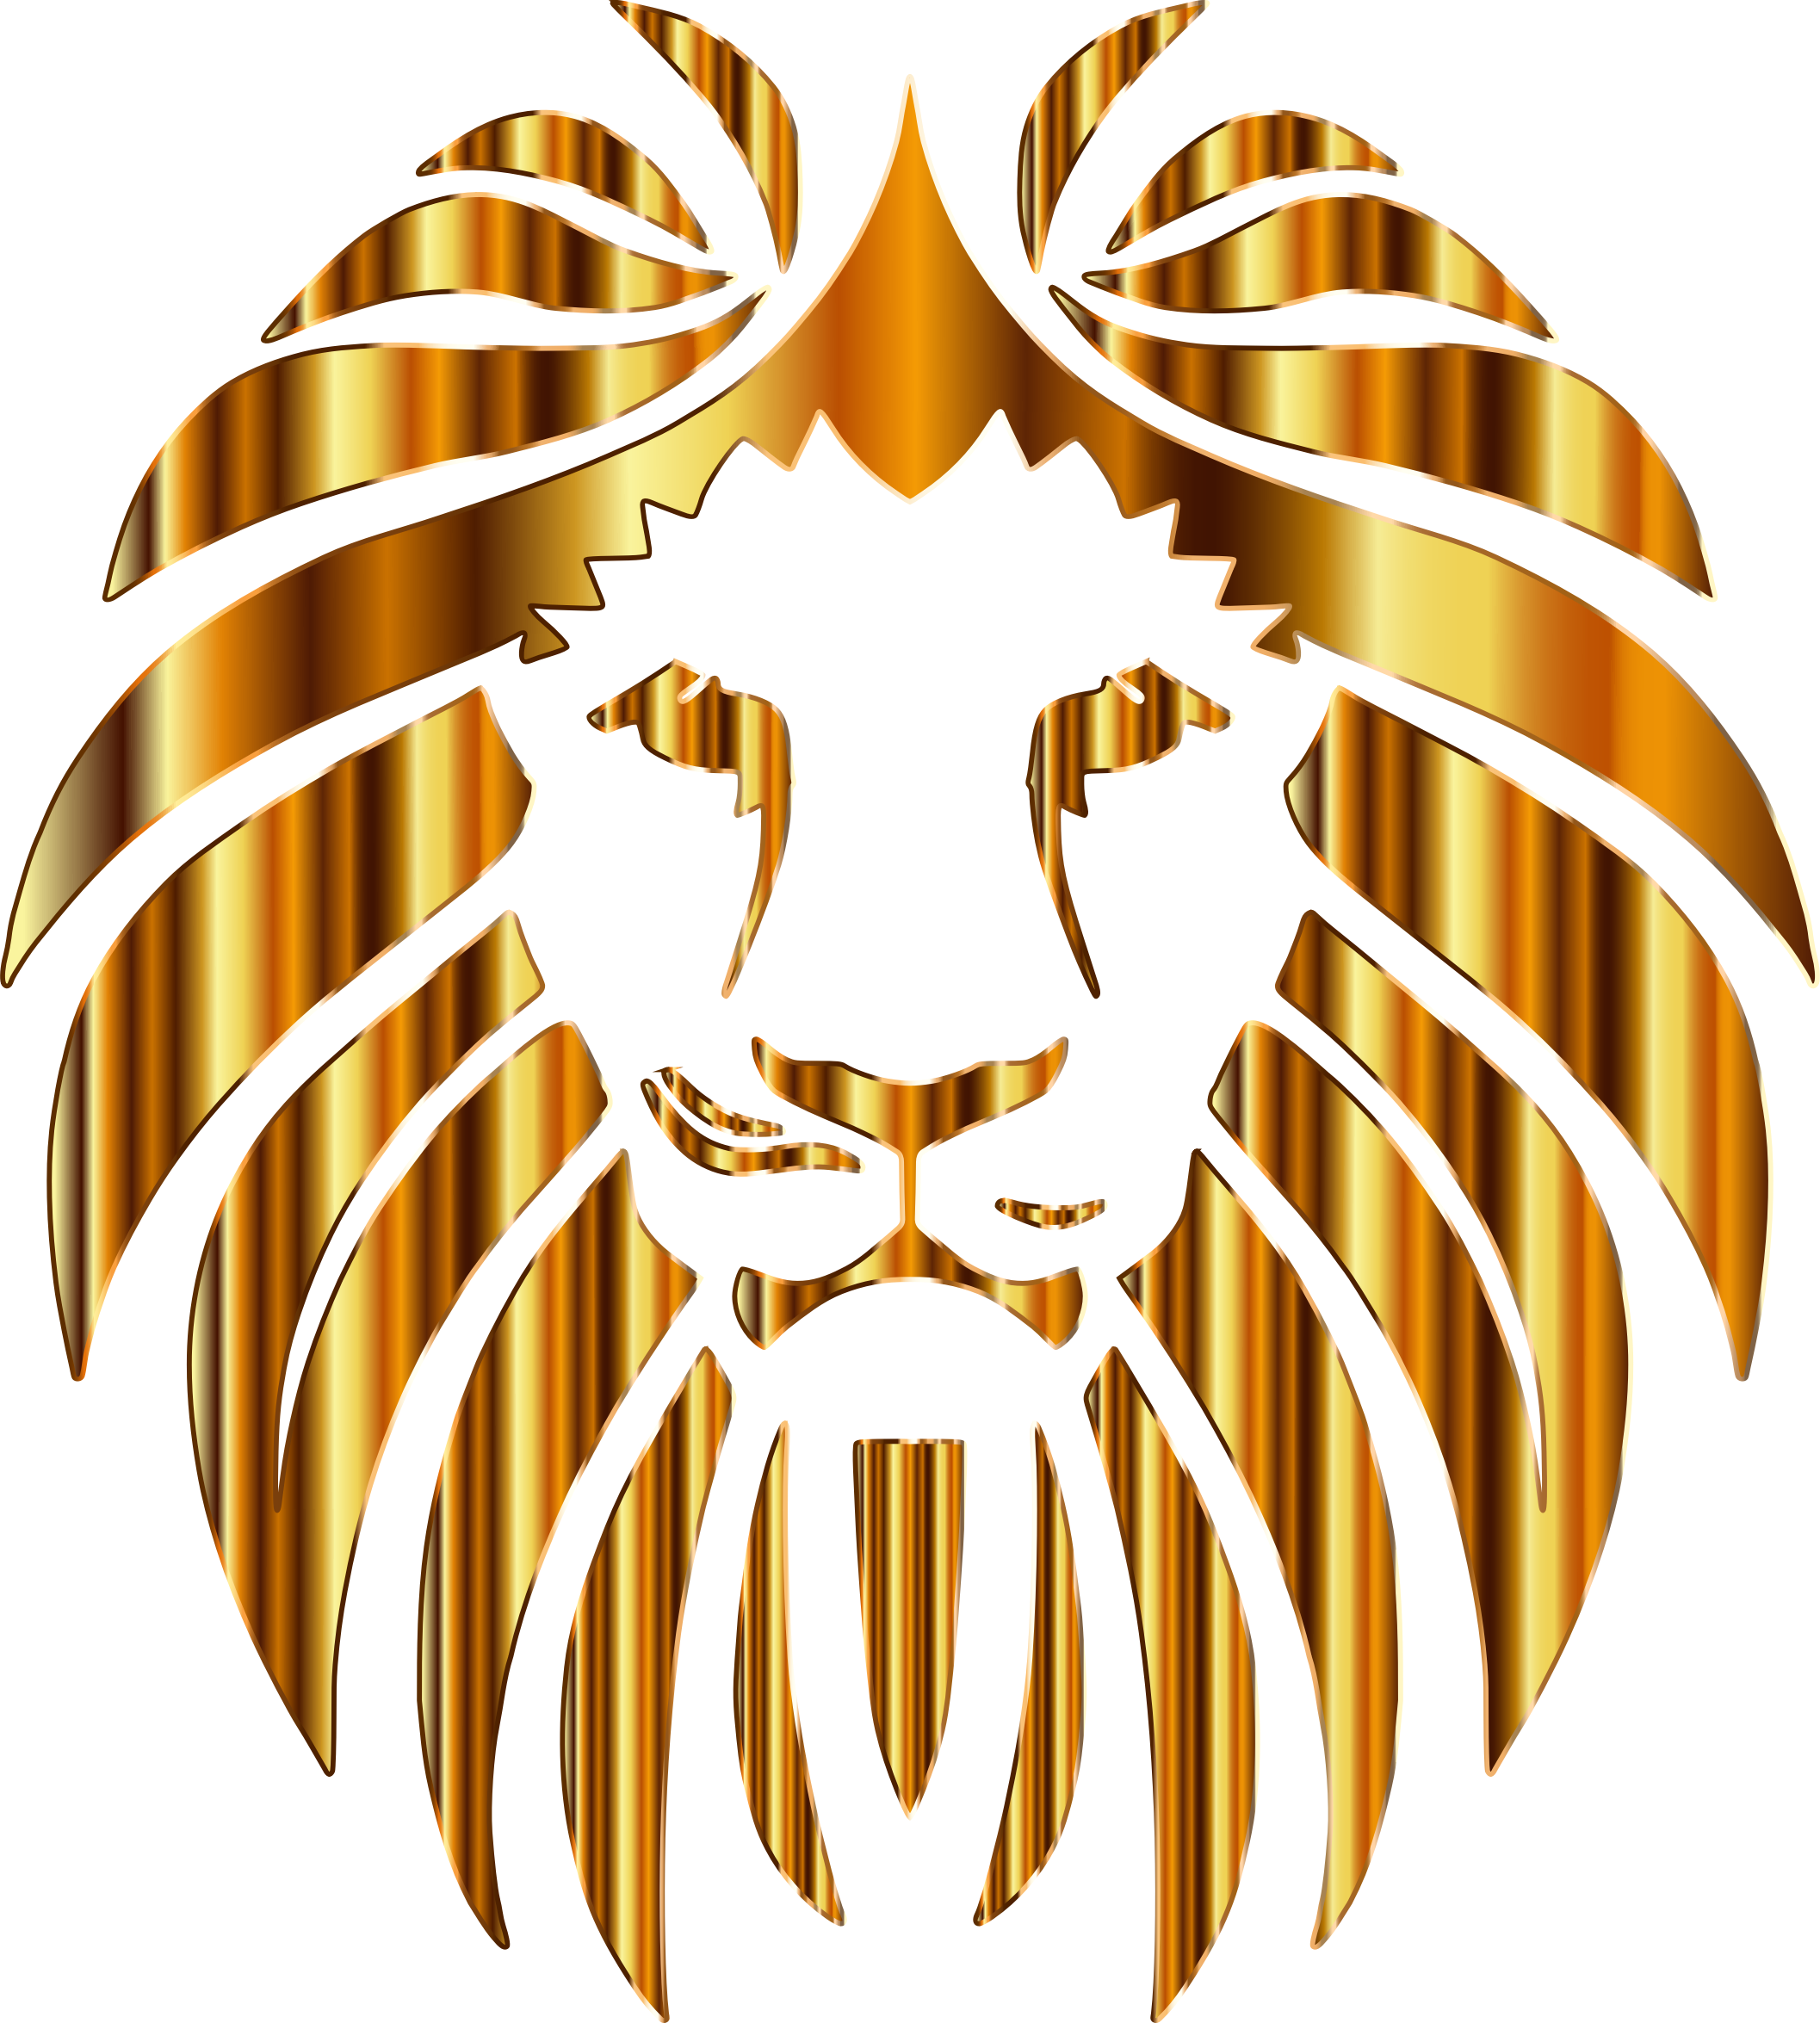 Lion and crown clipart clip royalty free download 28+ Collection of Golden Lion Clipart | High quality, free cliparts ... clip royalty free download